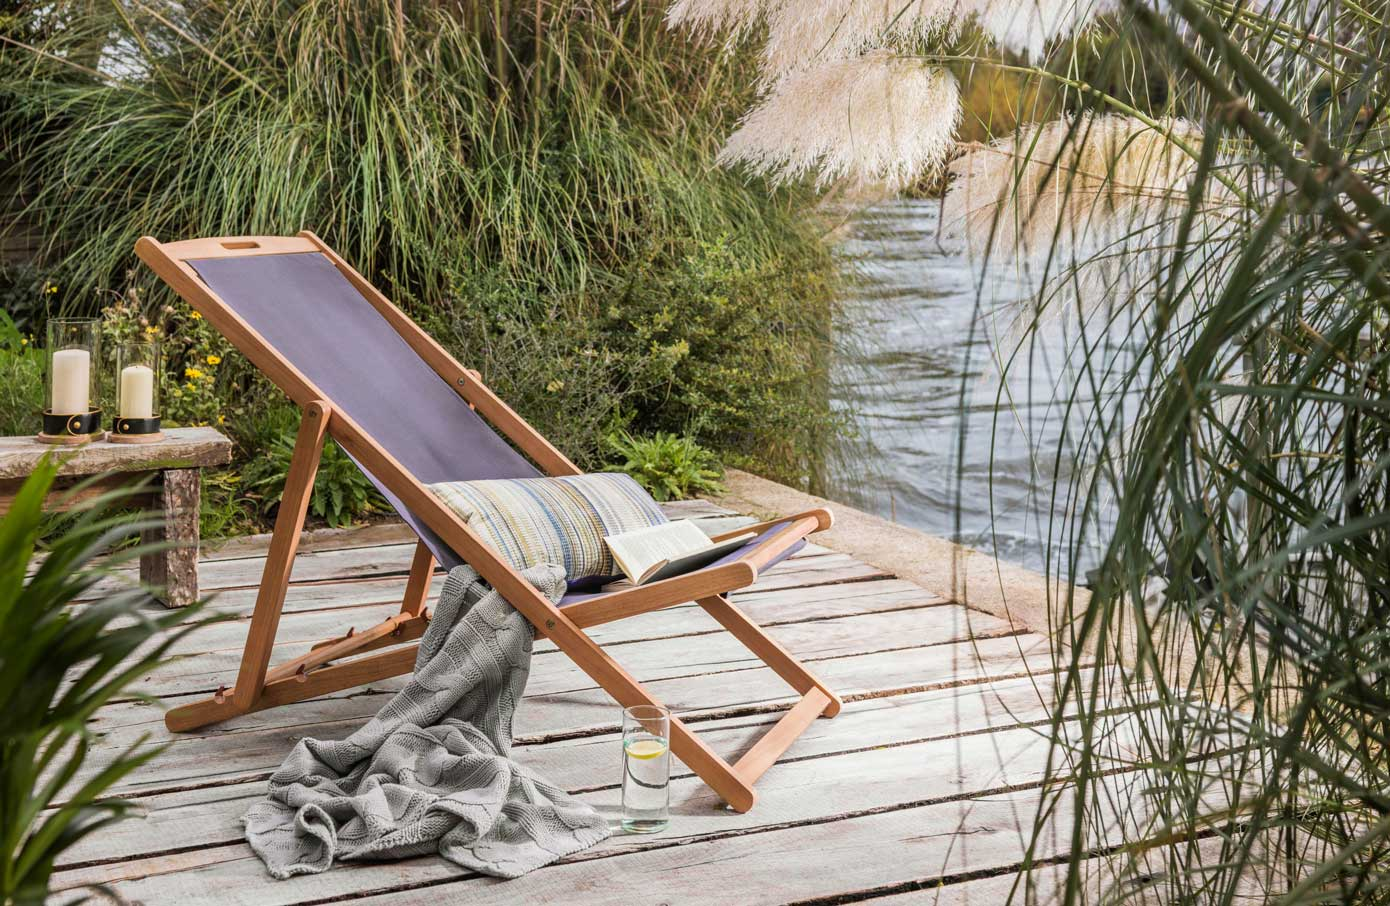 Deckchair Dreaming … What To Read For Truly Immersive Escapes